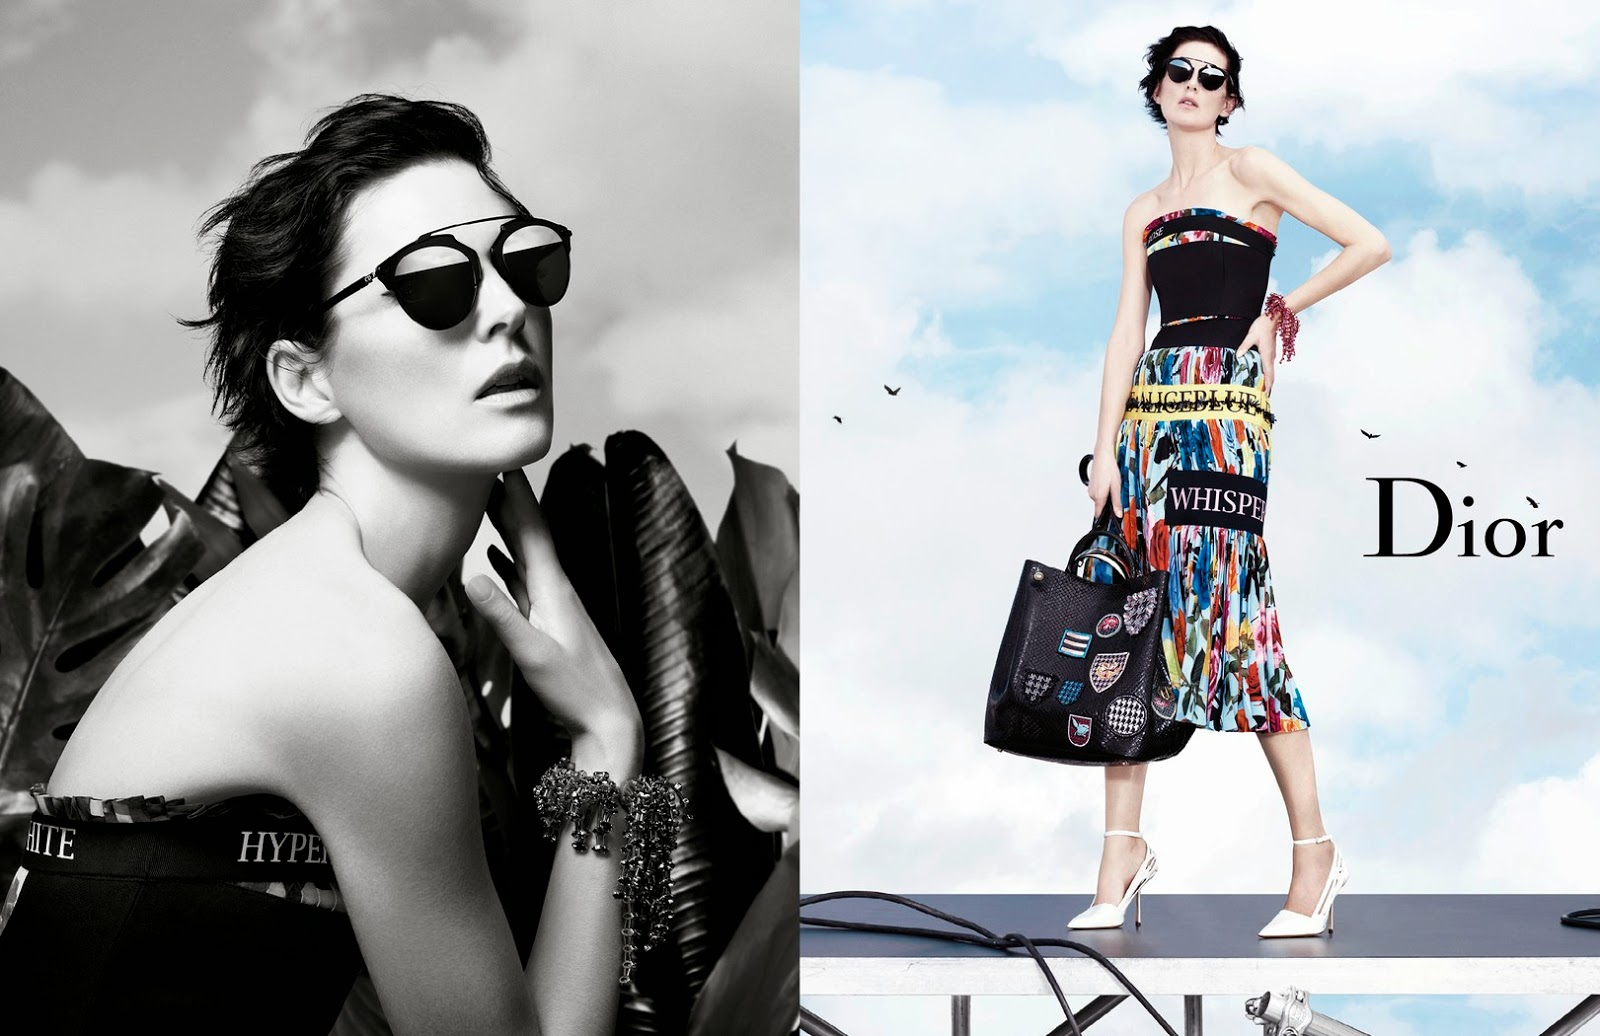 diors advertisement analysis Articles traitant de dior brand strategy écrits par sylvainbougnoux  media for  fashion brands as dior, where we can find some ads focusing on.